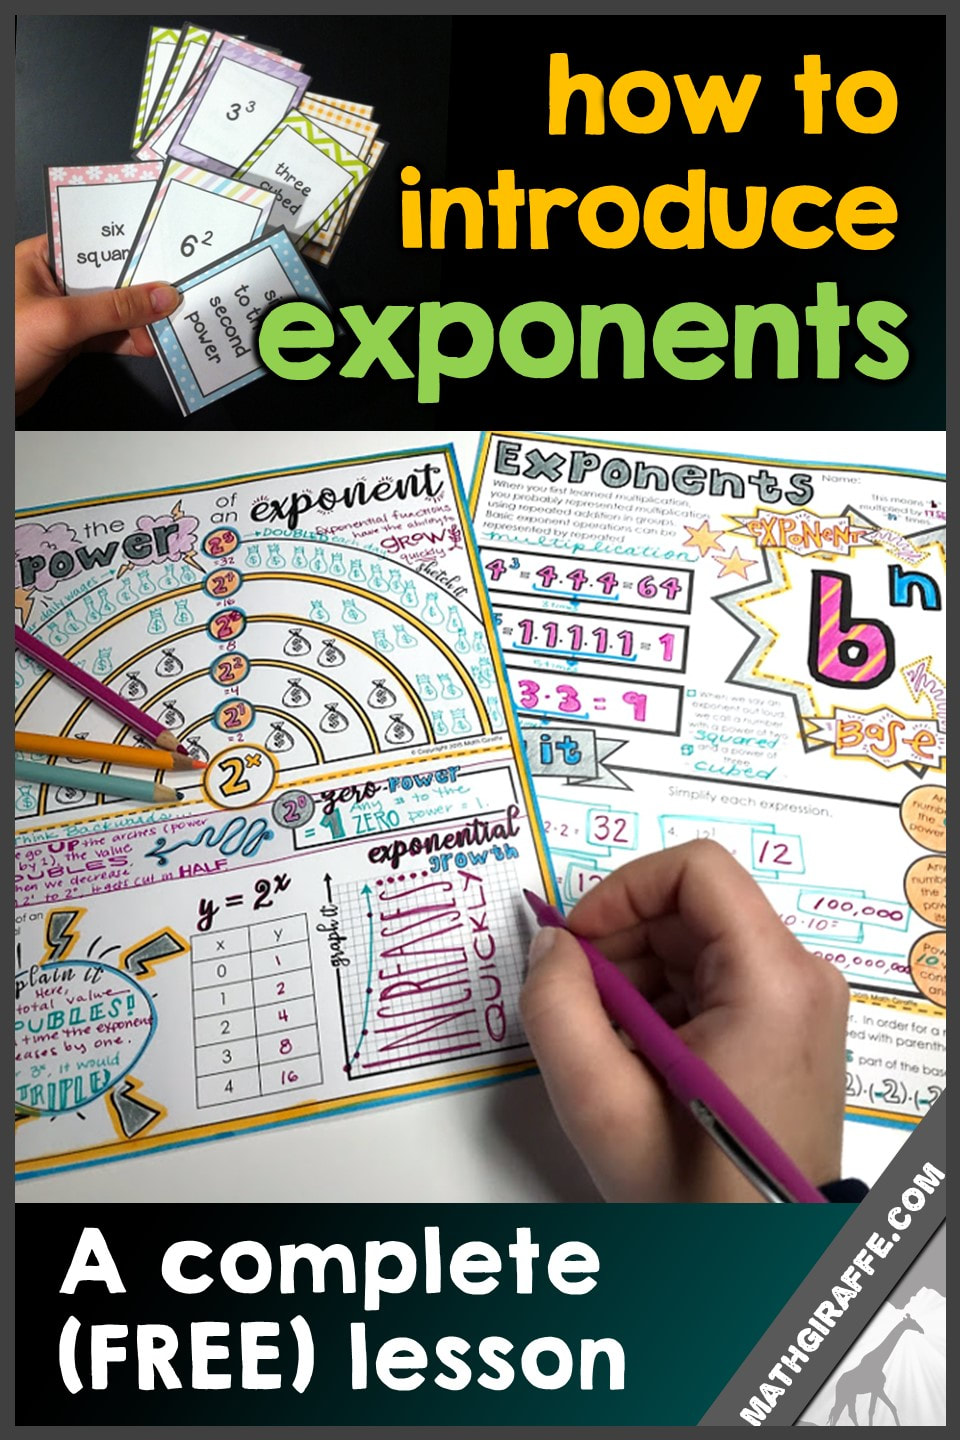 Introducing Exponents